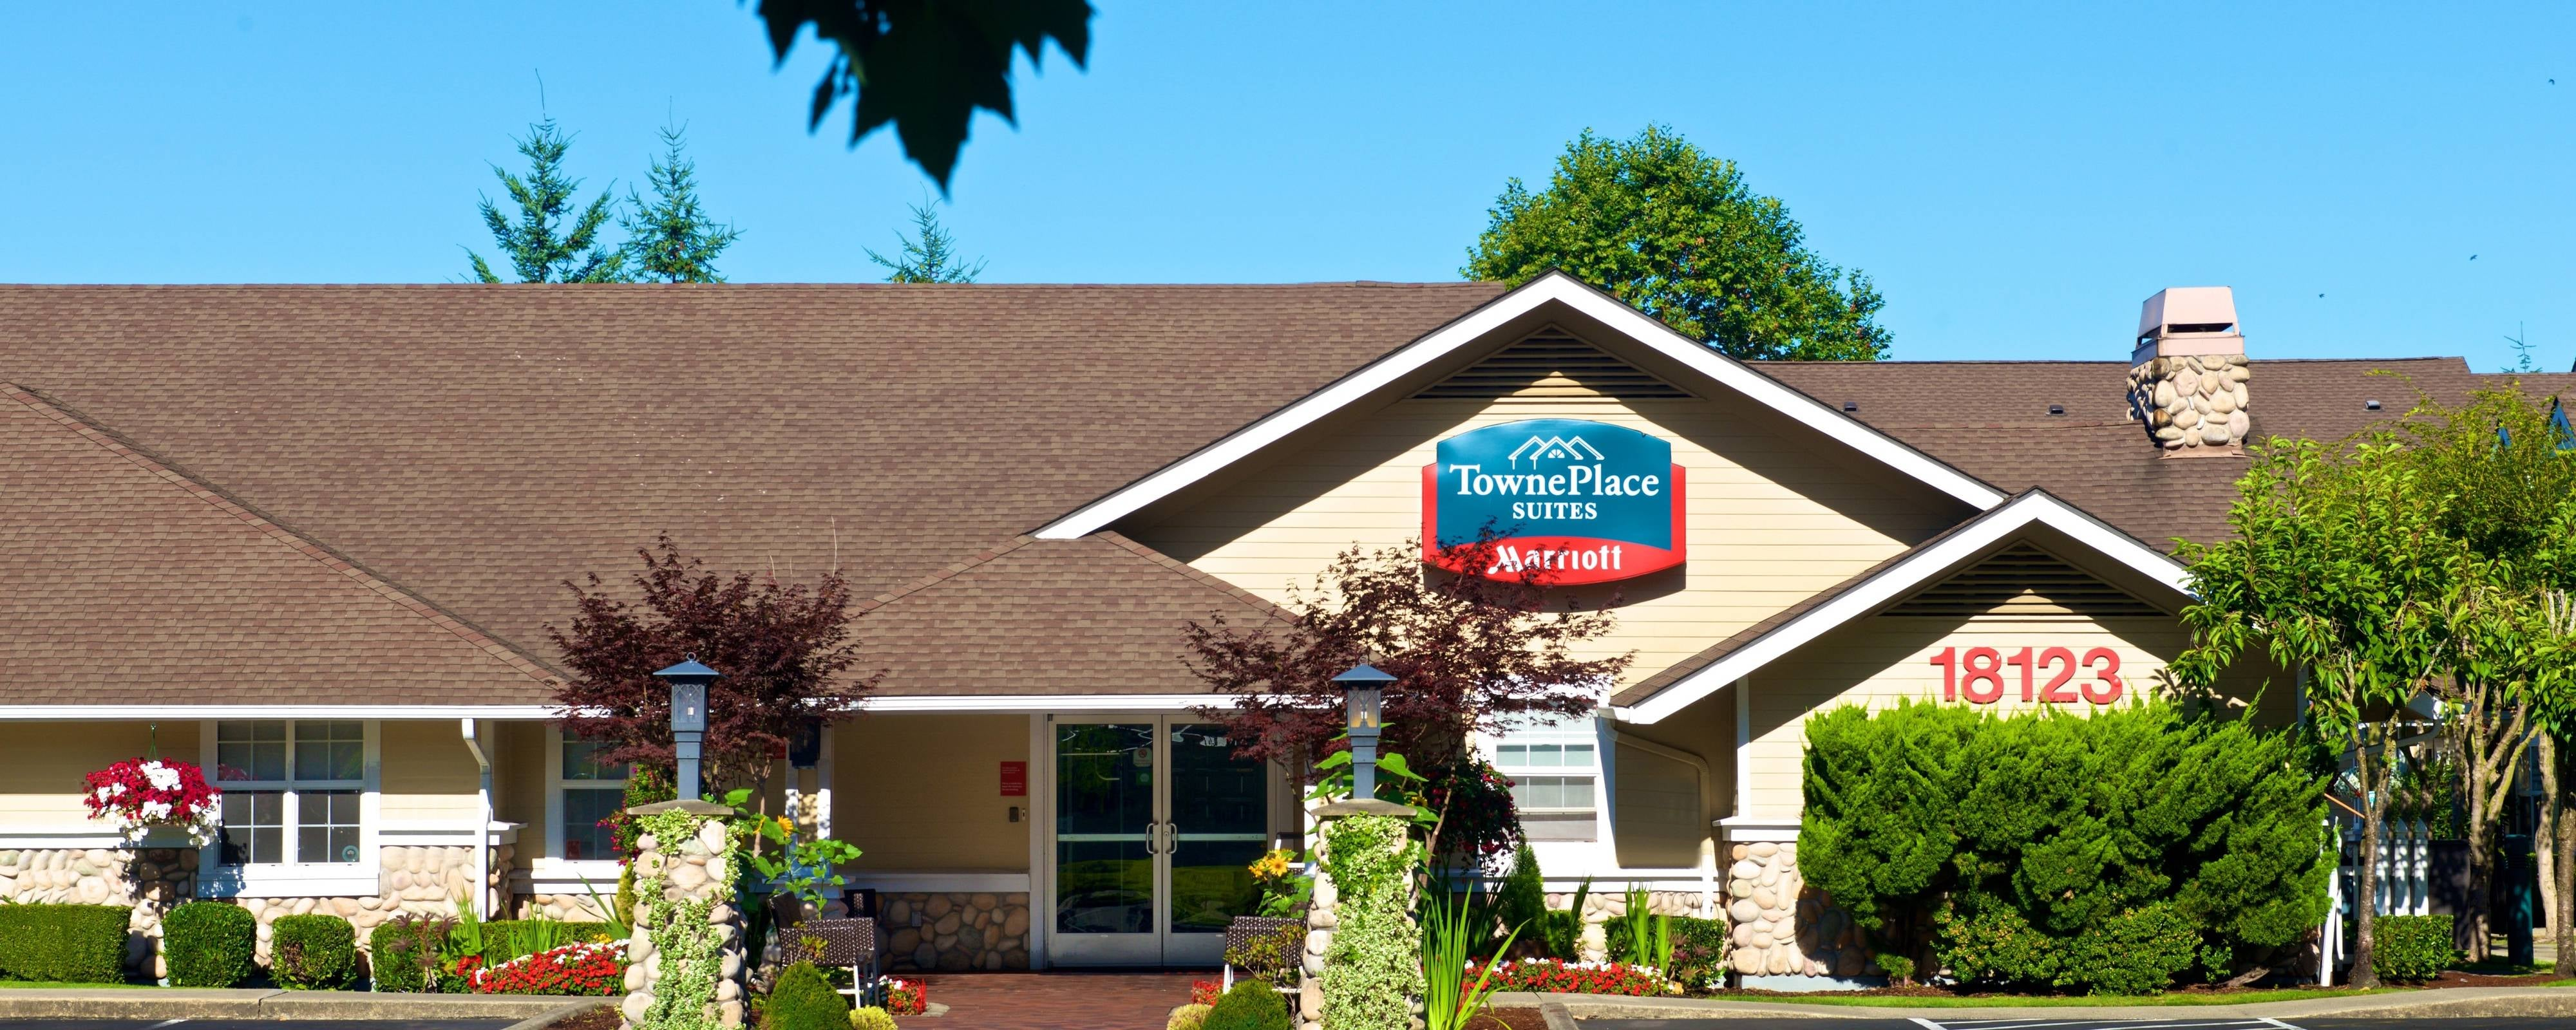 TownePlace Suites hotel near Seattle Renton Tukwila WA